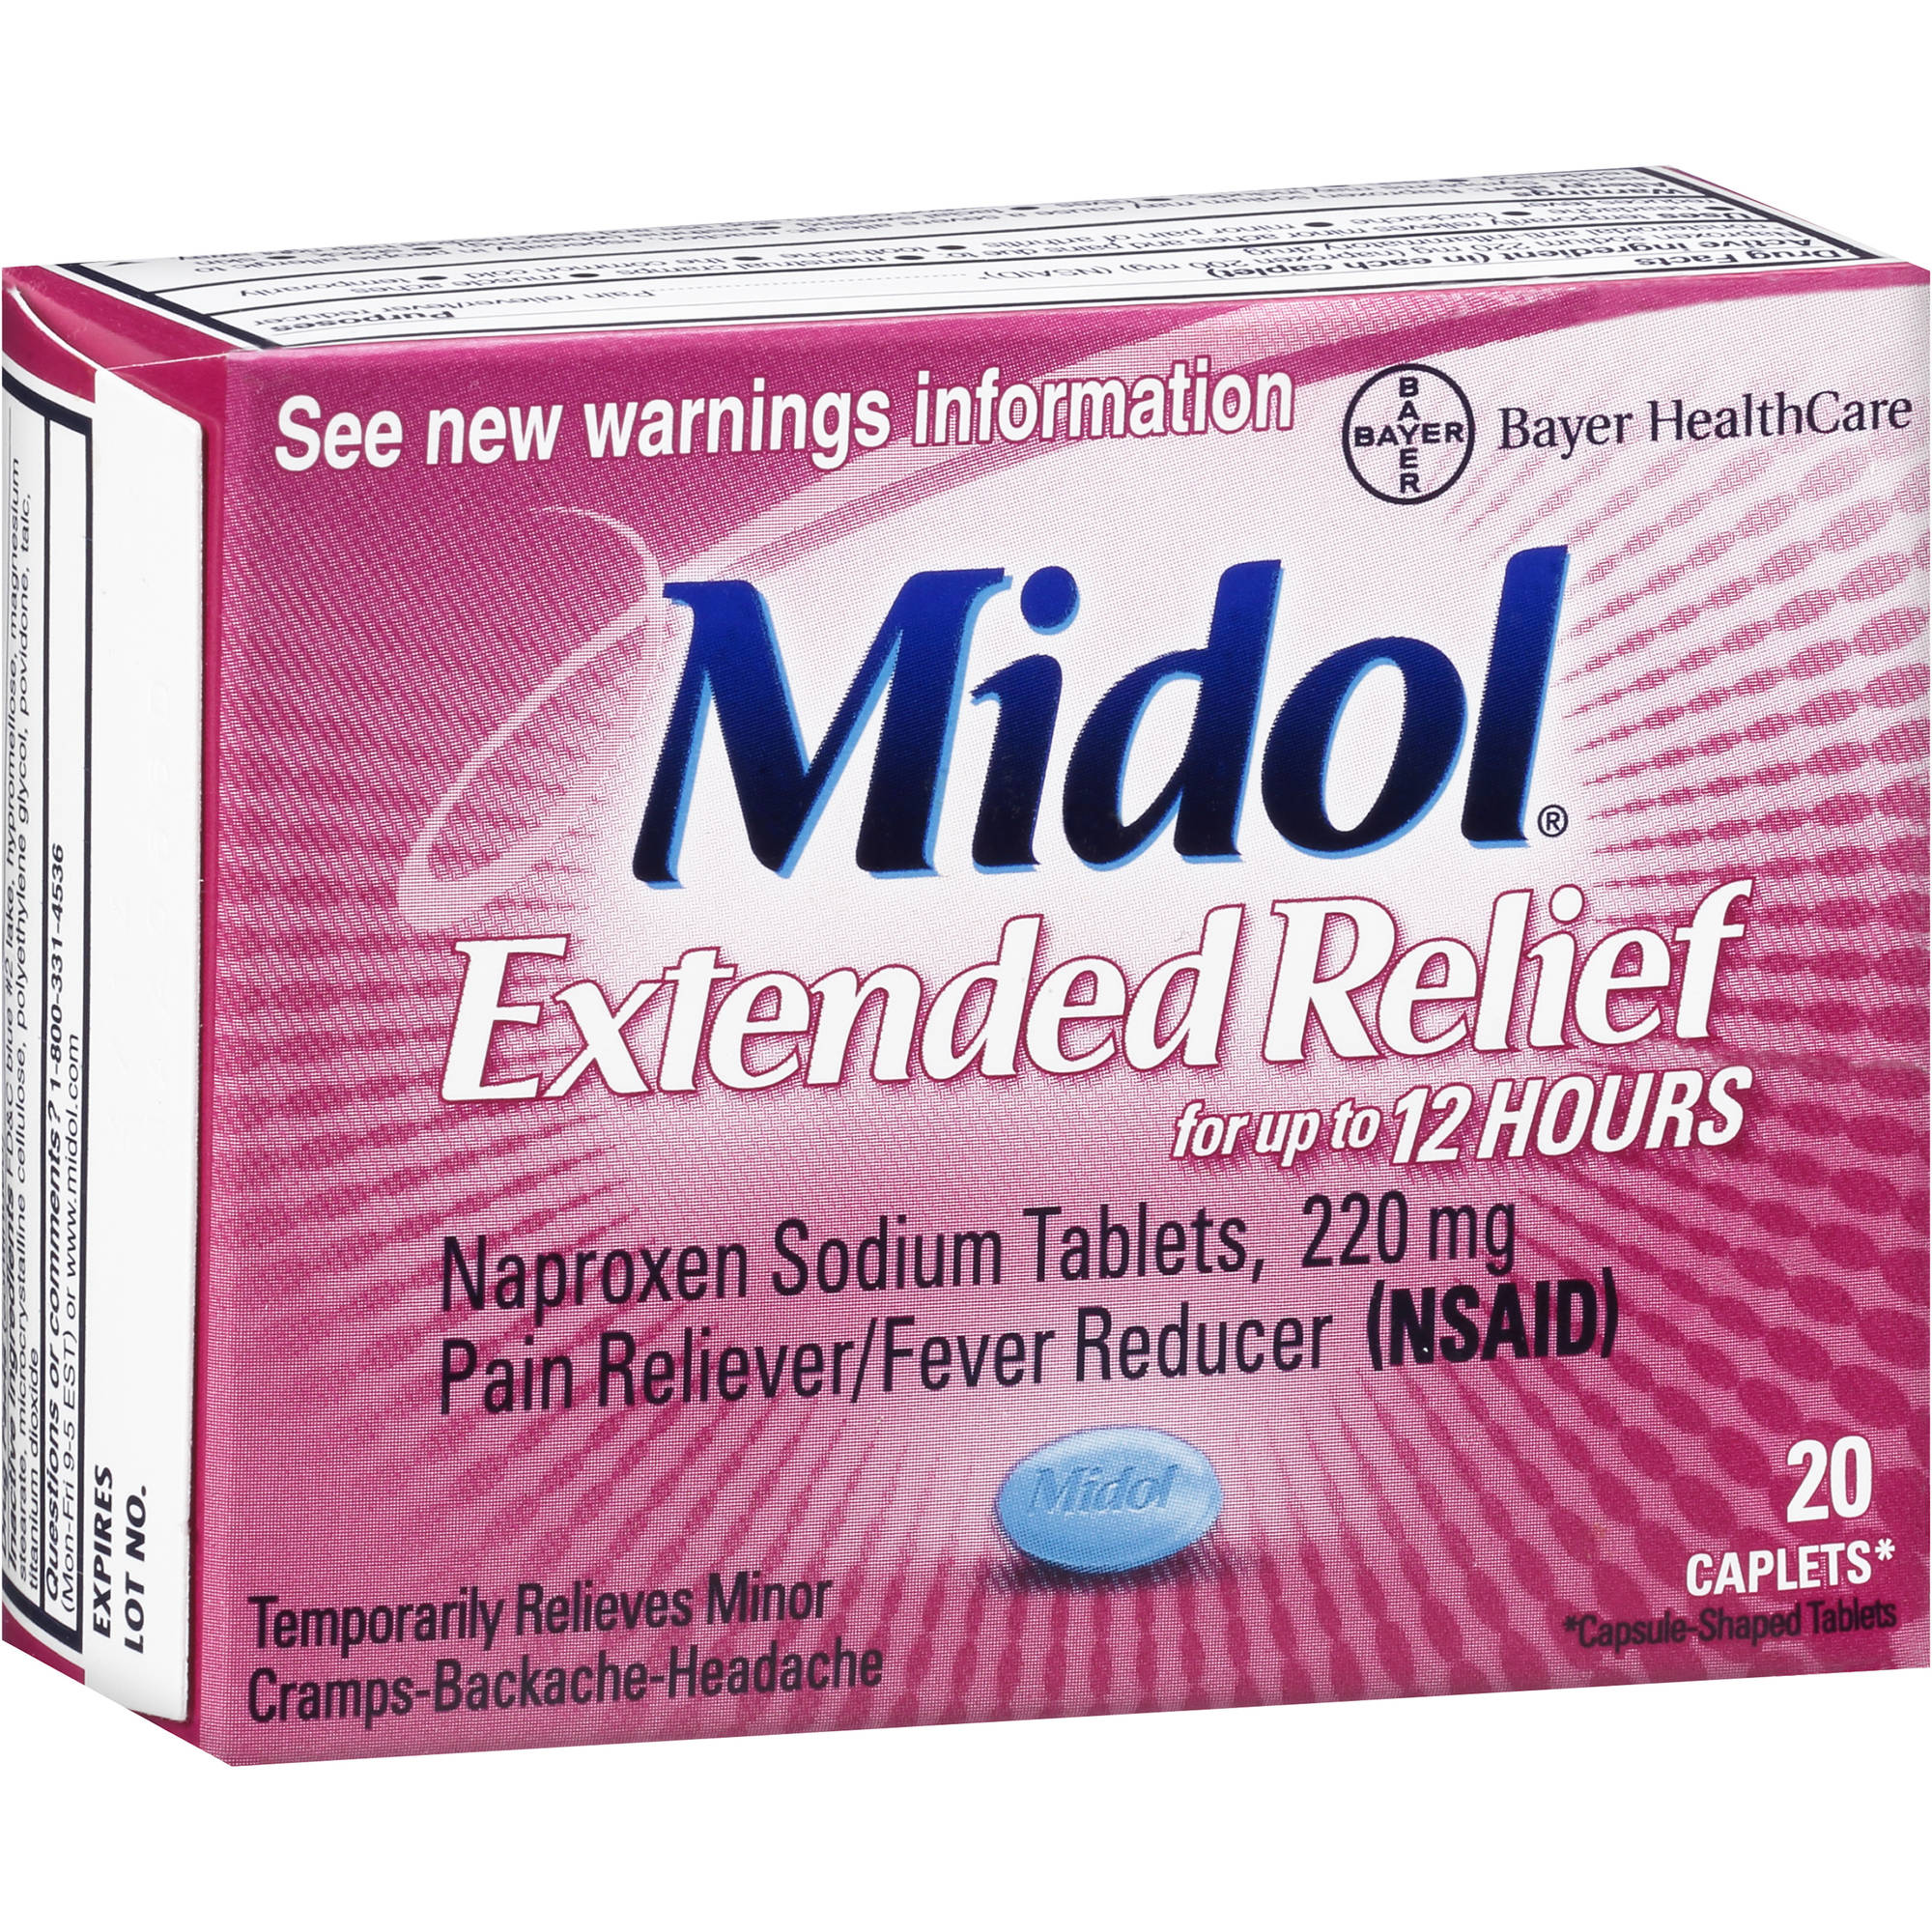 Midol Extended Relief Naproxen Sodium Pain Reliever/Fever Reducer 220mg, 20ct